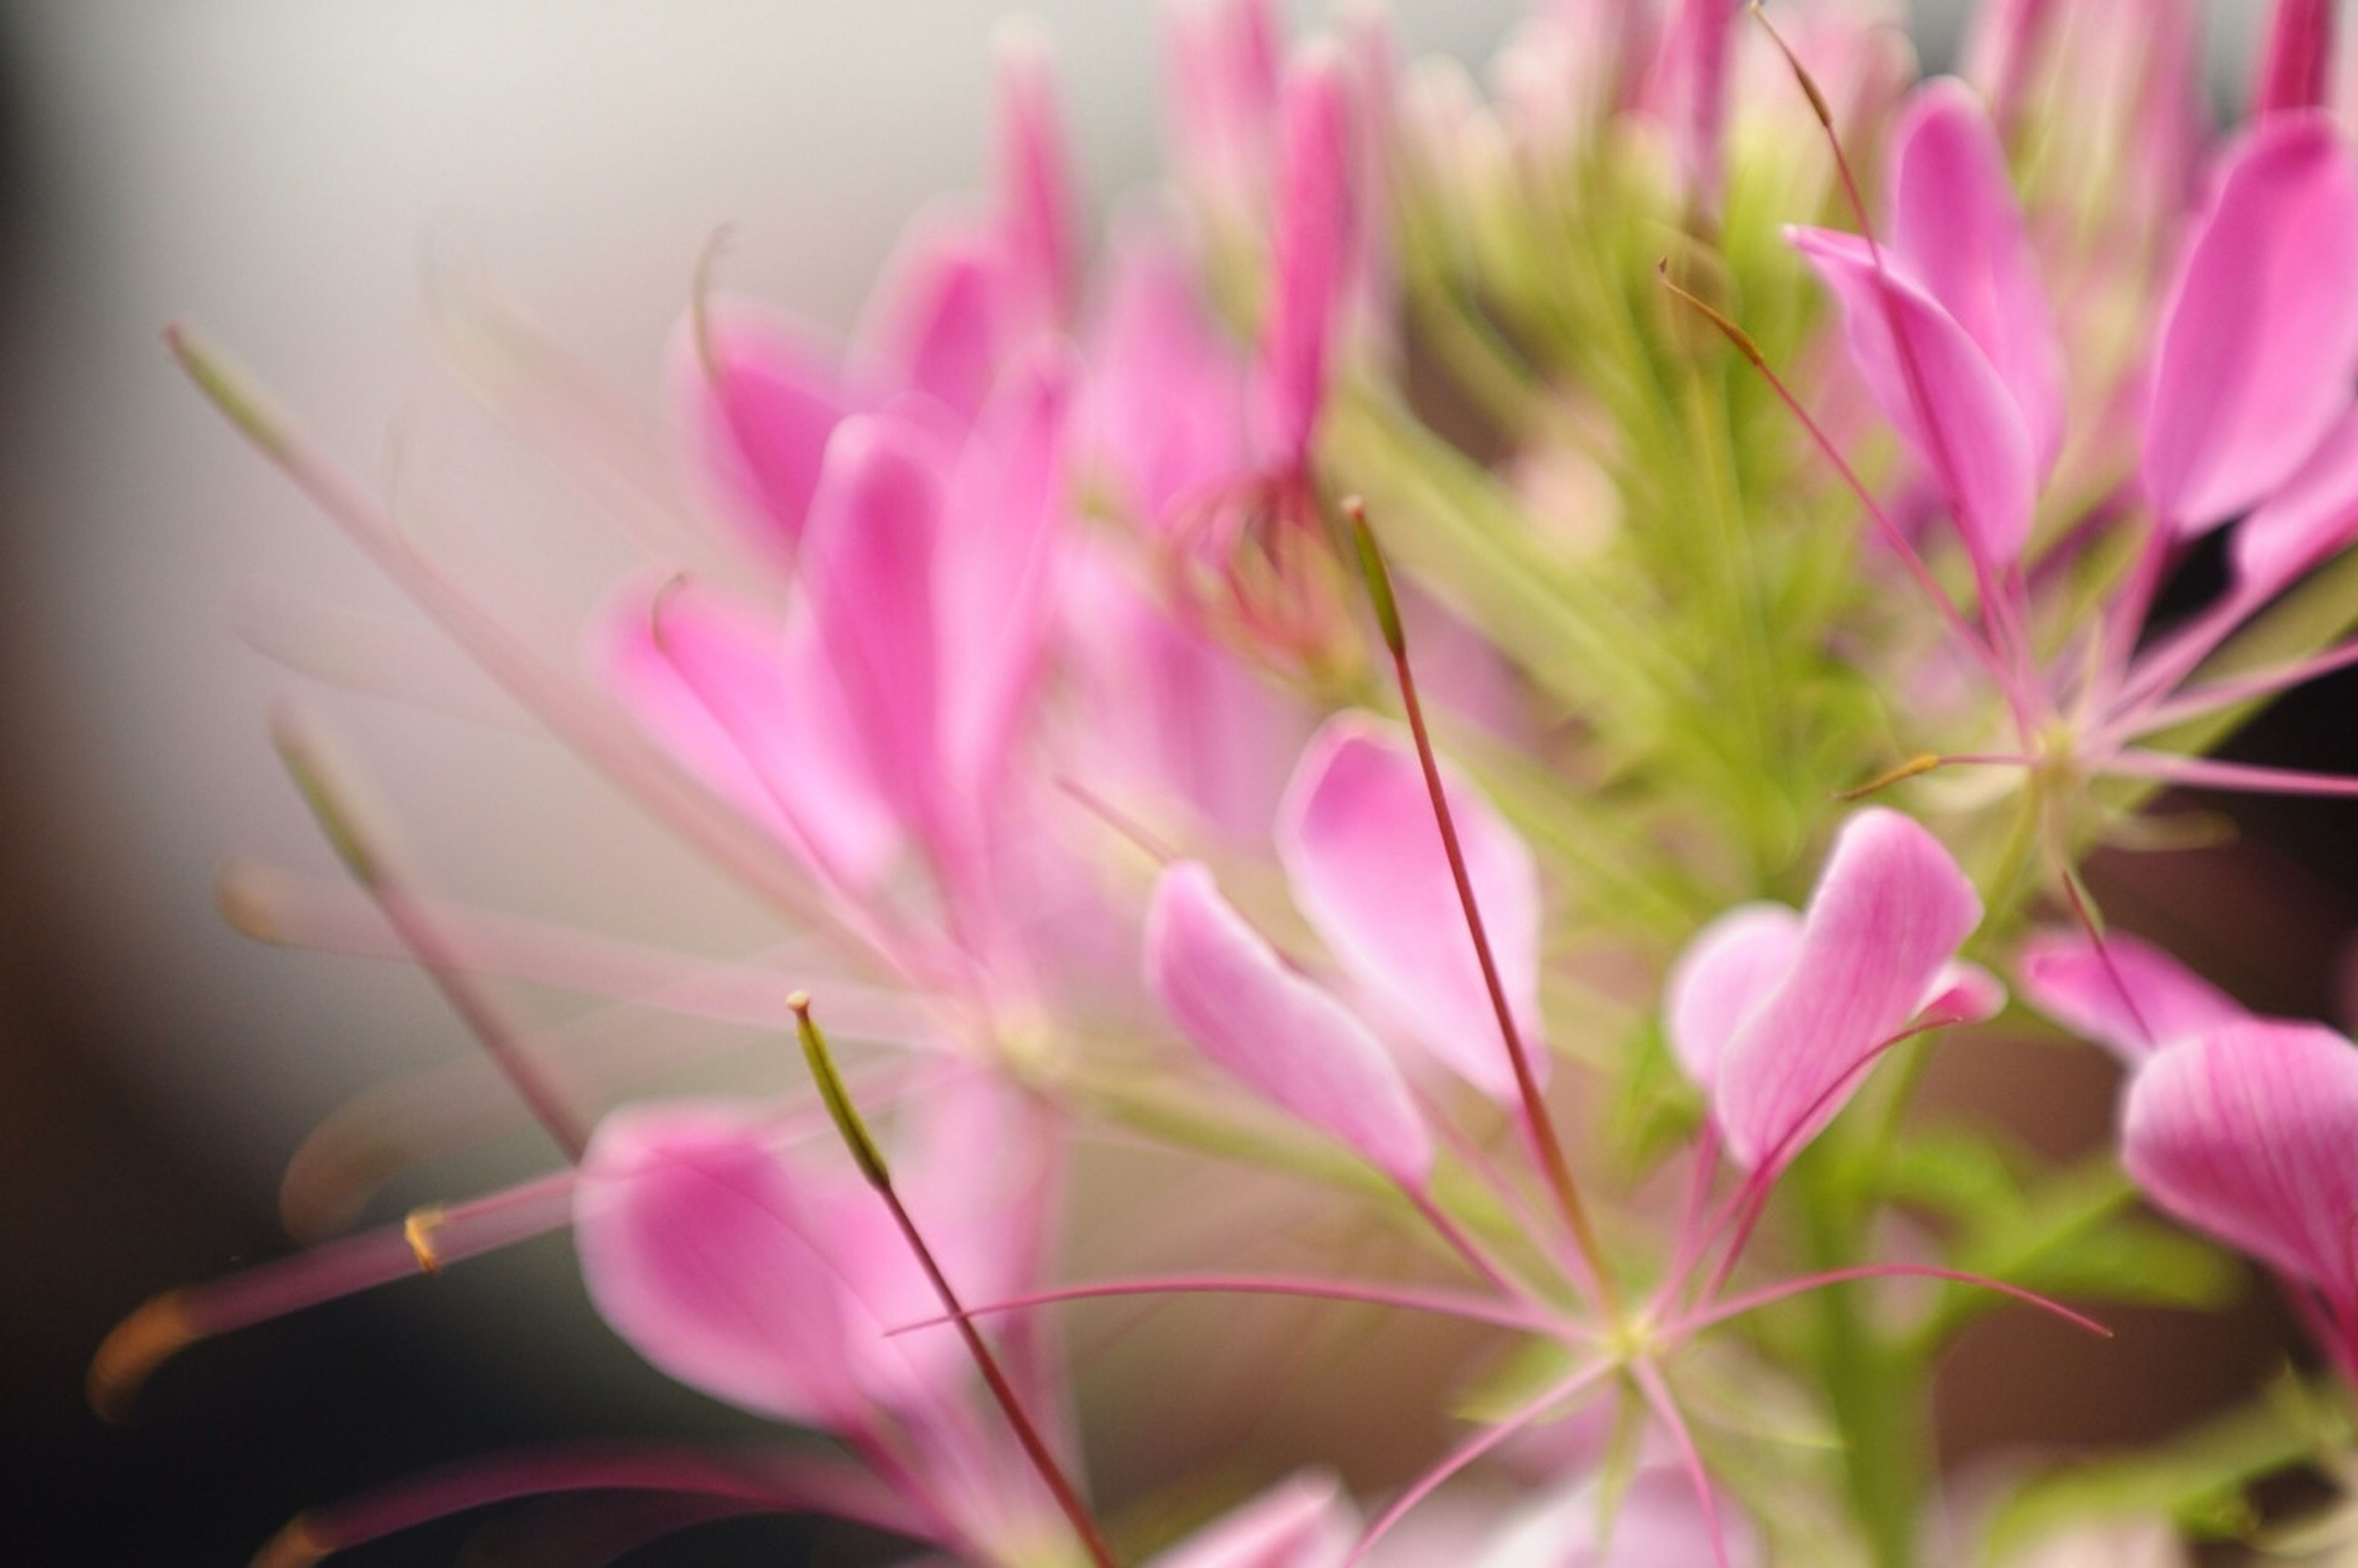 flower, petal, freshness, pink color, fragility, growth, flower head, close-up, beauty in nature, plant, nature, focus on foreground, blooming, pink, selective focus, stem, purple, in bloom, no people, bud